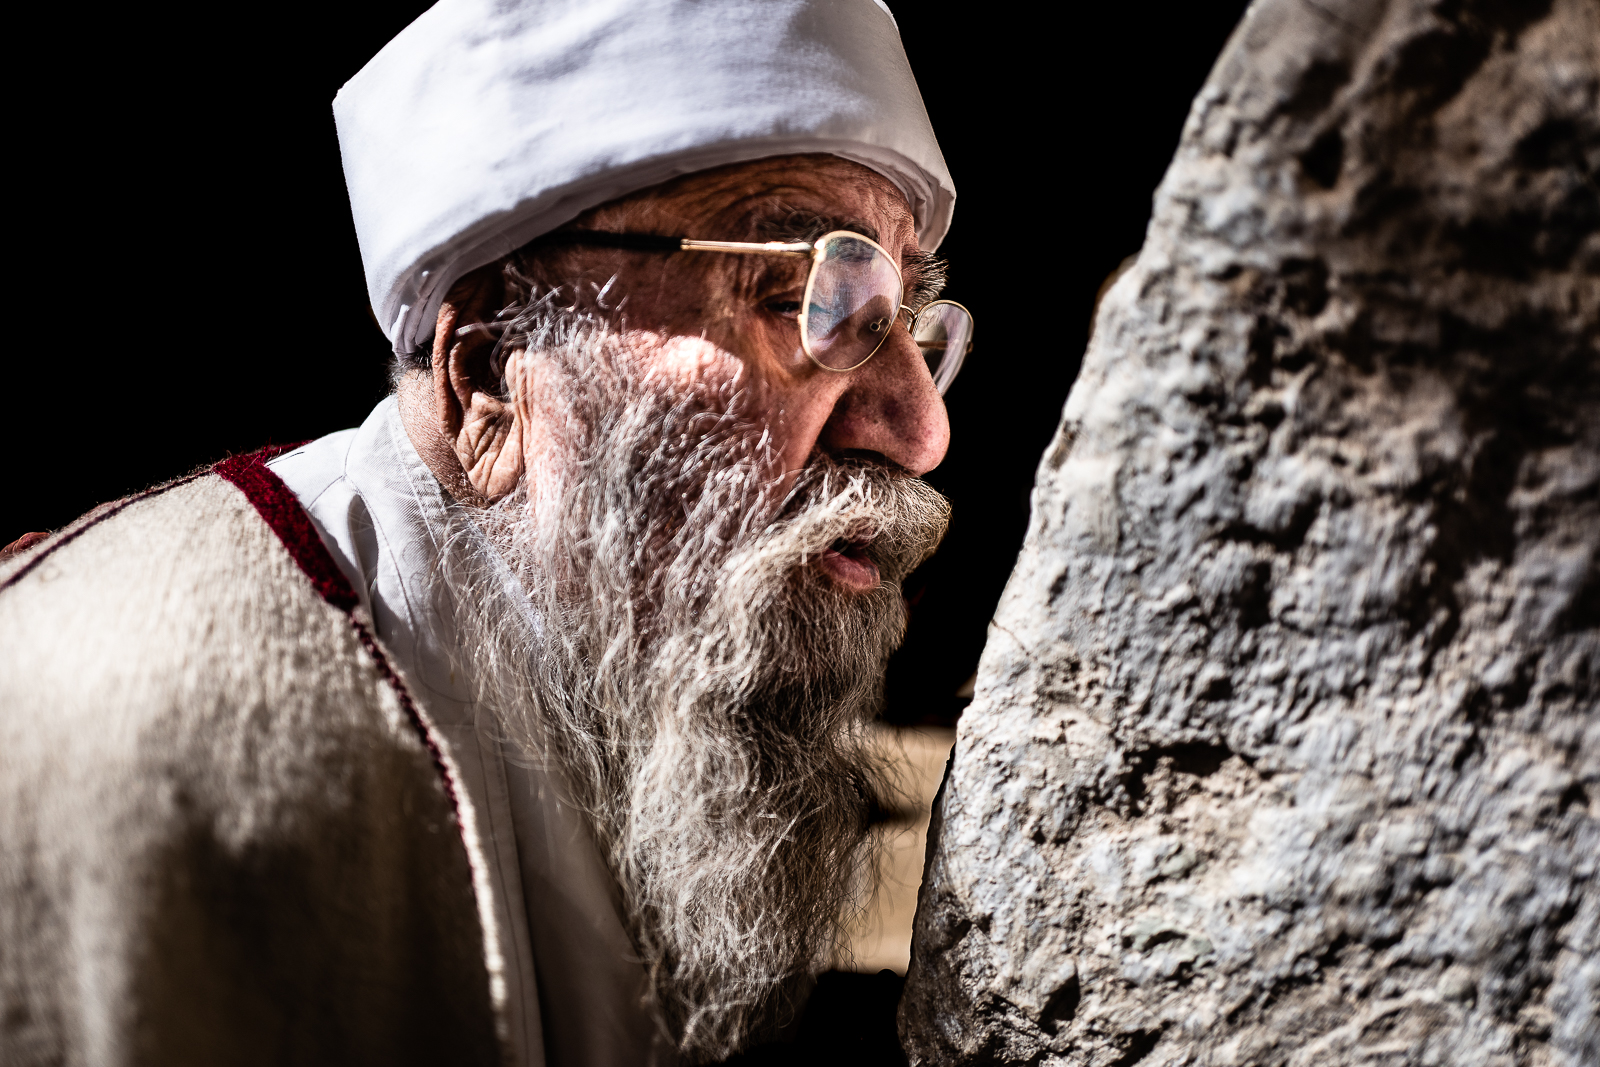 Baba Sheikh is kissing a holy stone in Lalish